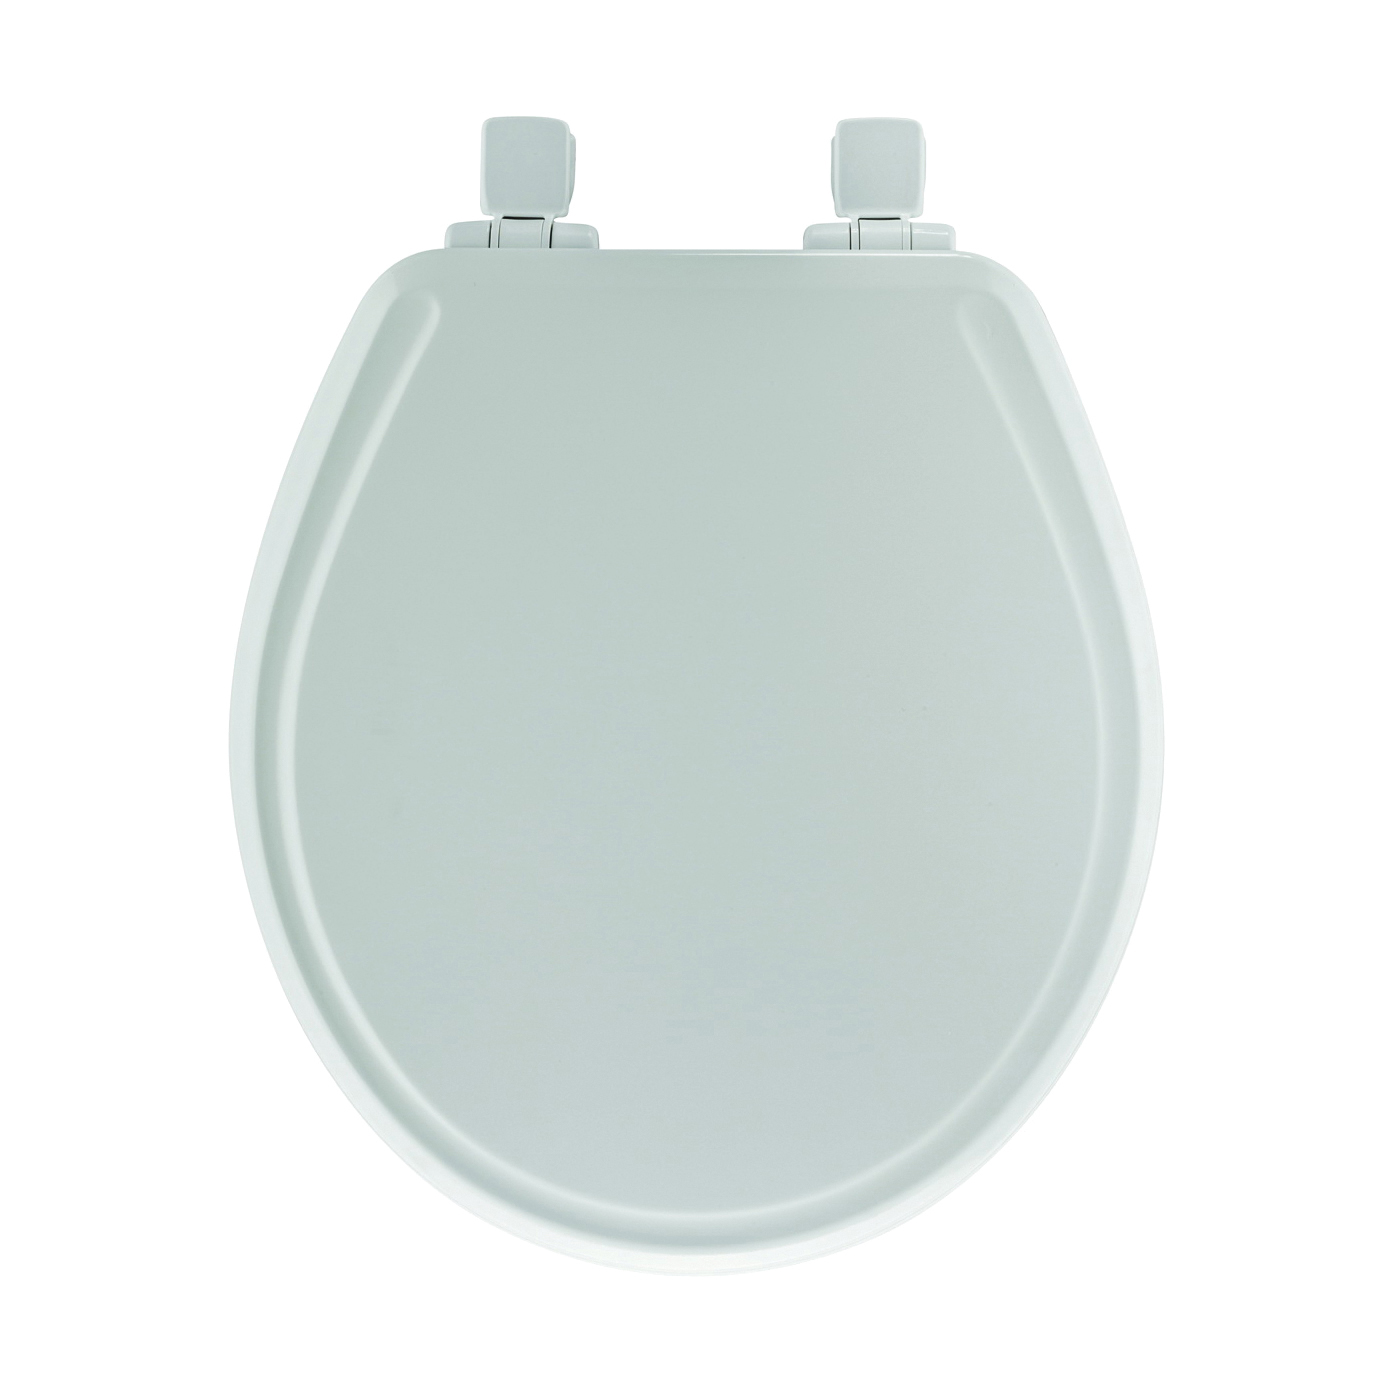 Picture of Mayfair 148SLOWA-000/148E Toilet Seat, Elongated, Molded Wood, White, Twist Hinge